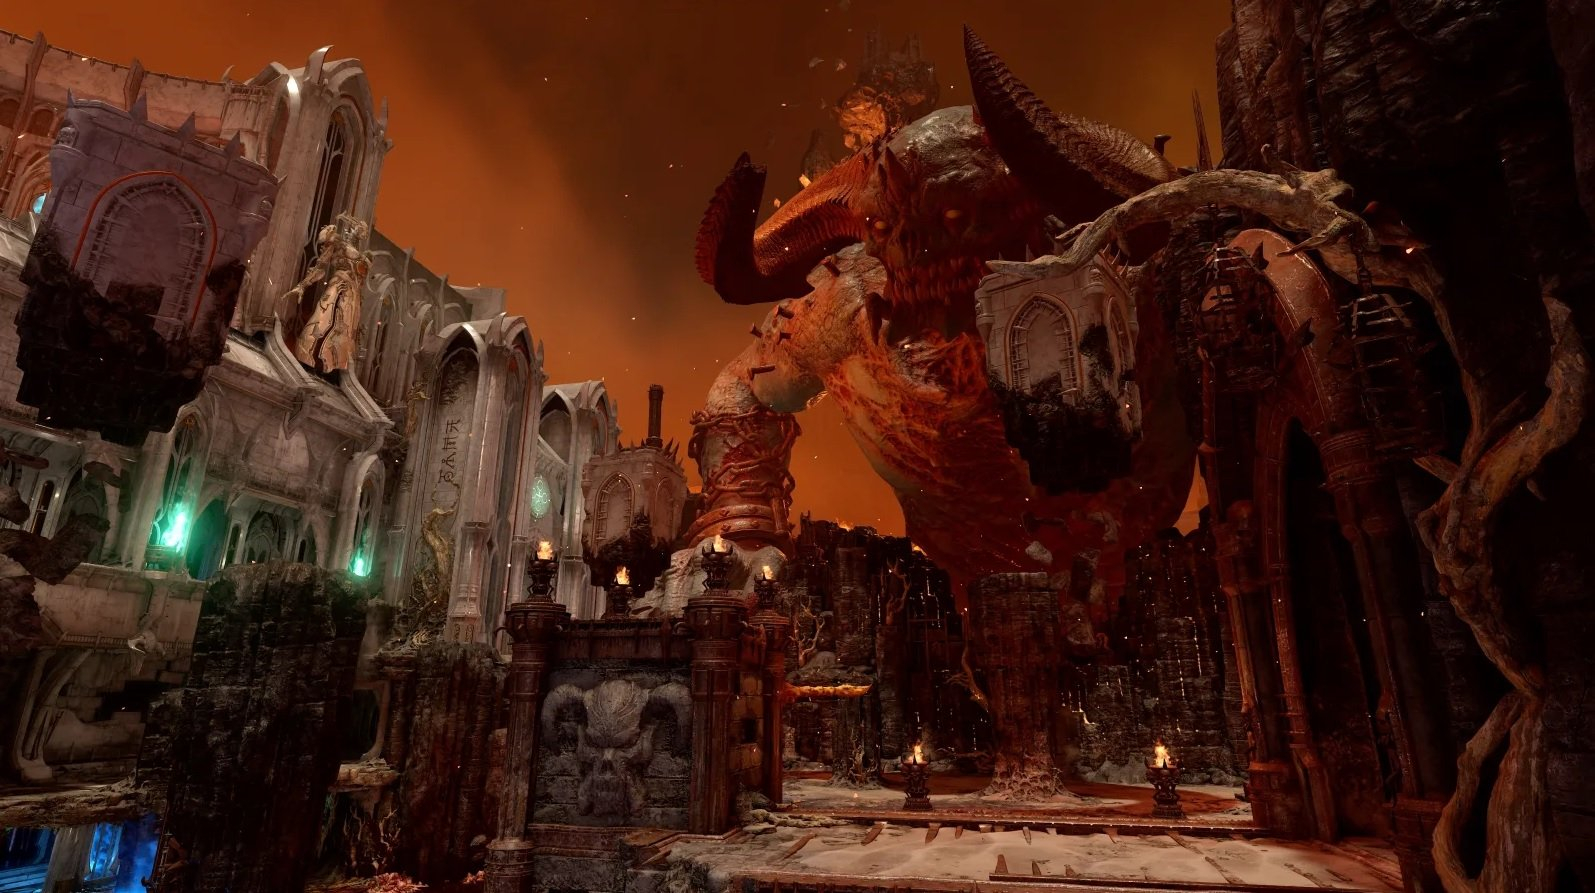 This Doom Eternal Tv Ad Misses The Mark Entirely